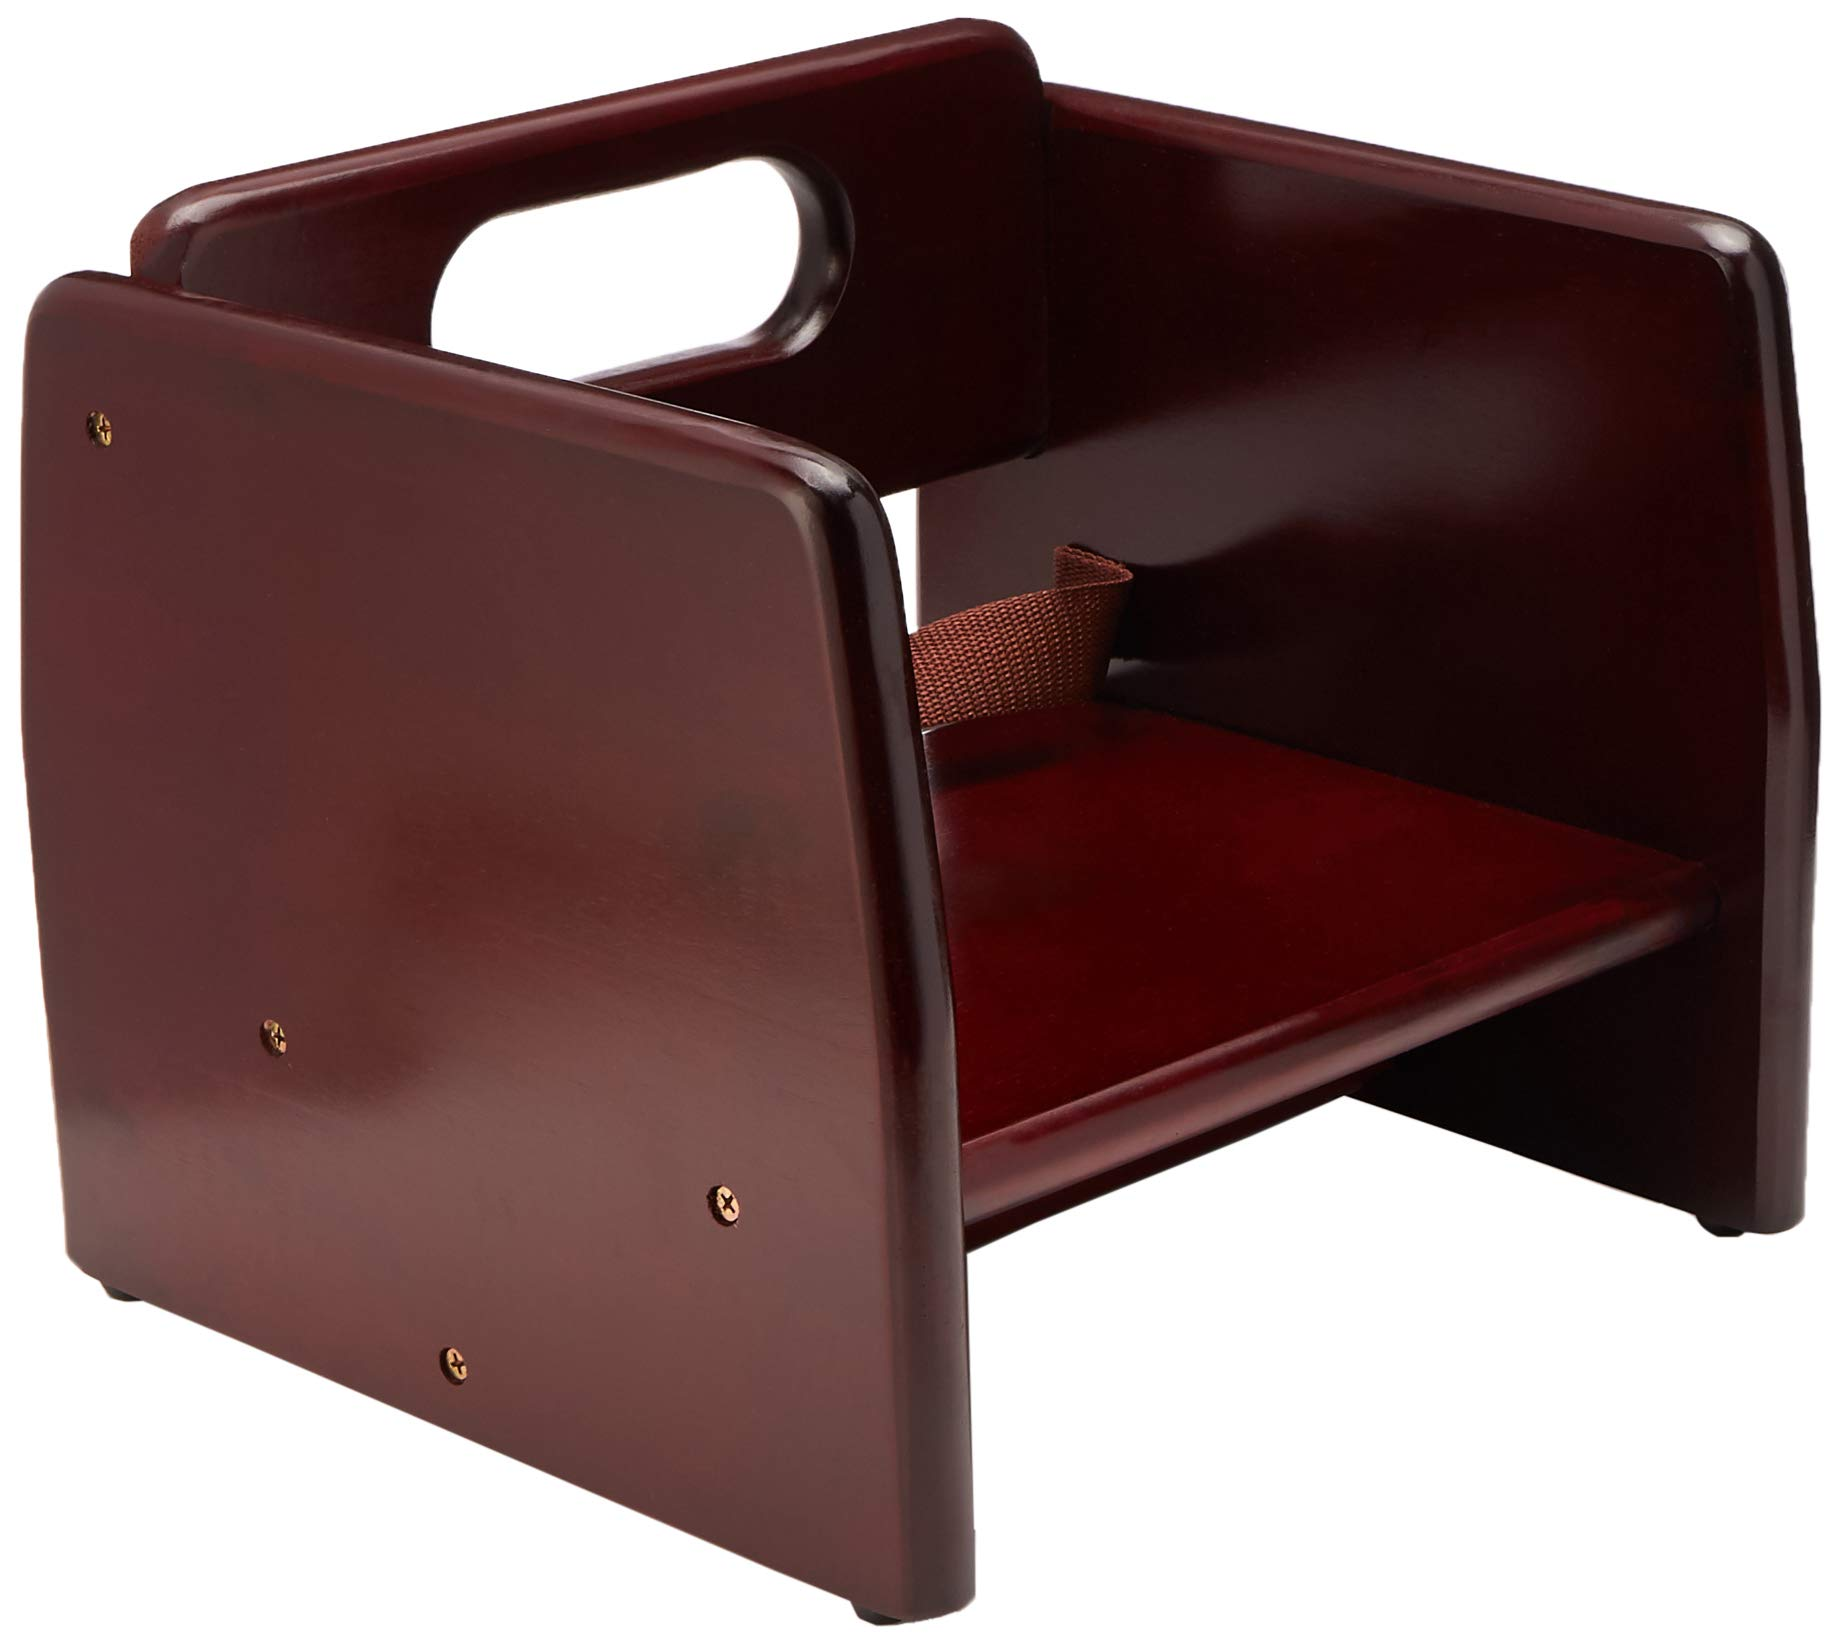 Winco CHB-703 Wooden Booster Seat, Mahogony by Winco